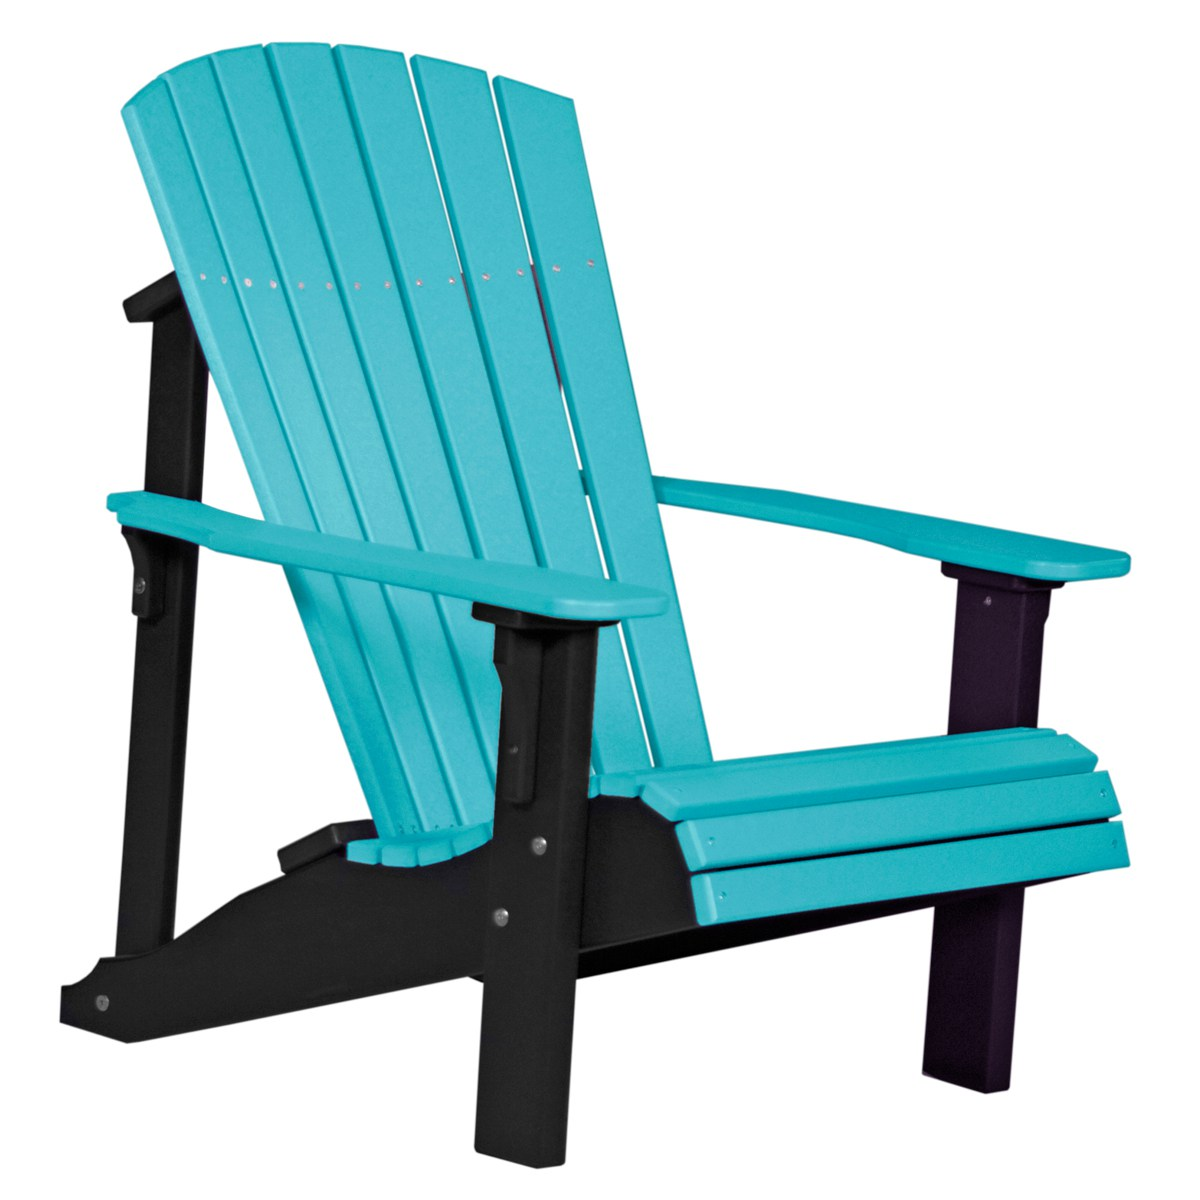 Arondyke Chairs Deluxe Adirondack Chair Recycled Patio Fine Oak Things